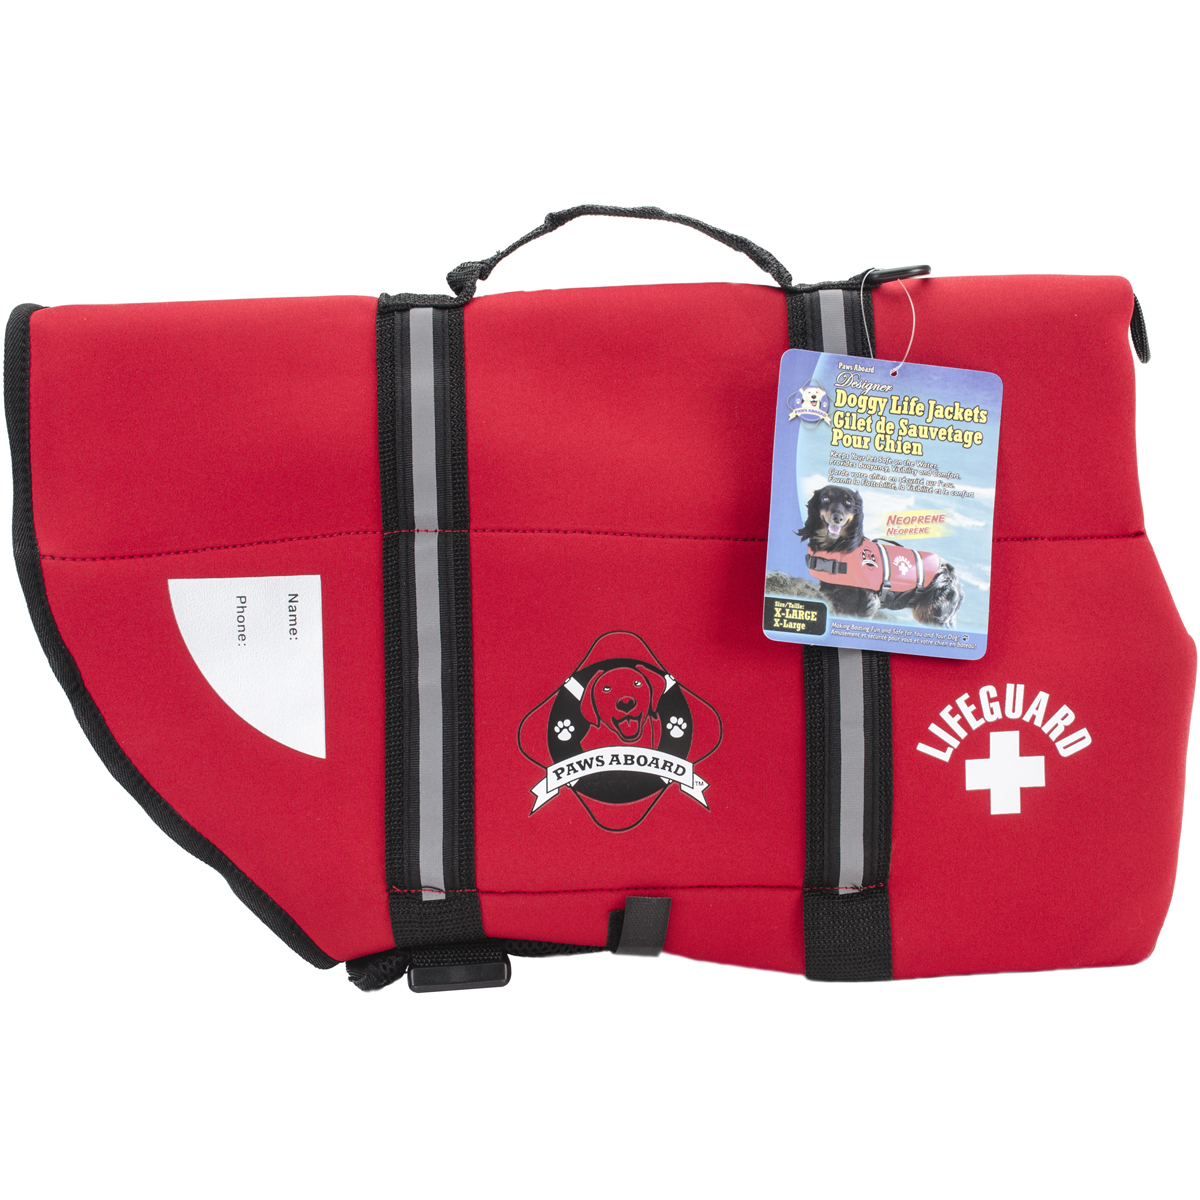 Paws Aboard Neoprene Doggy Life Jacket Extra Large-Red